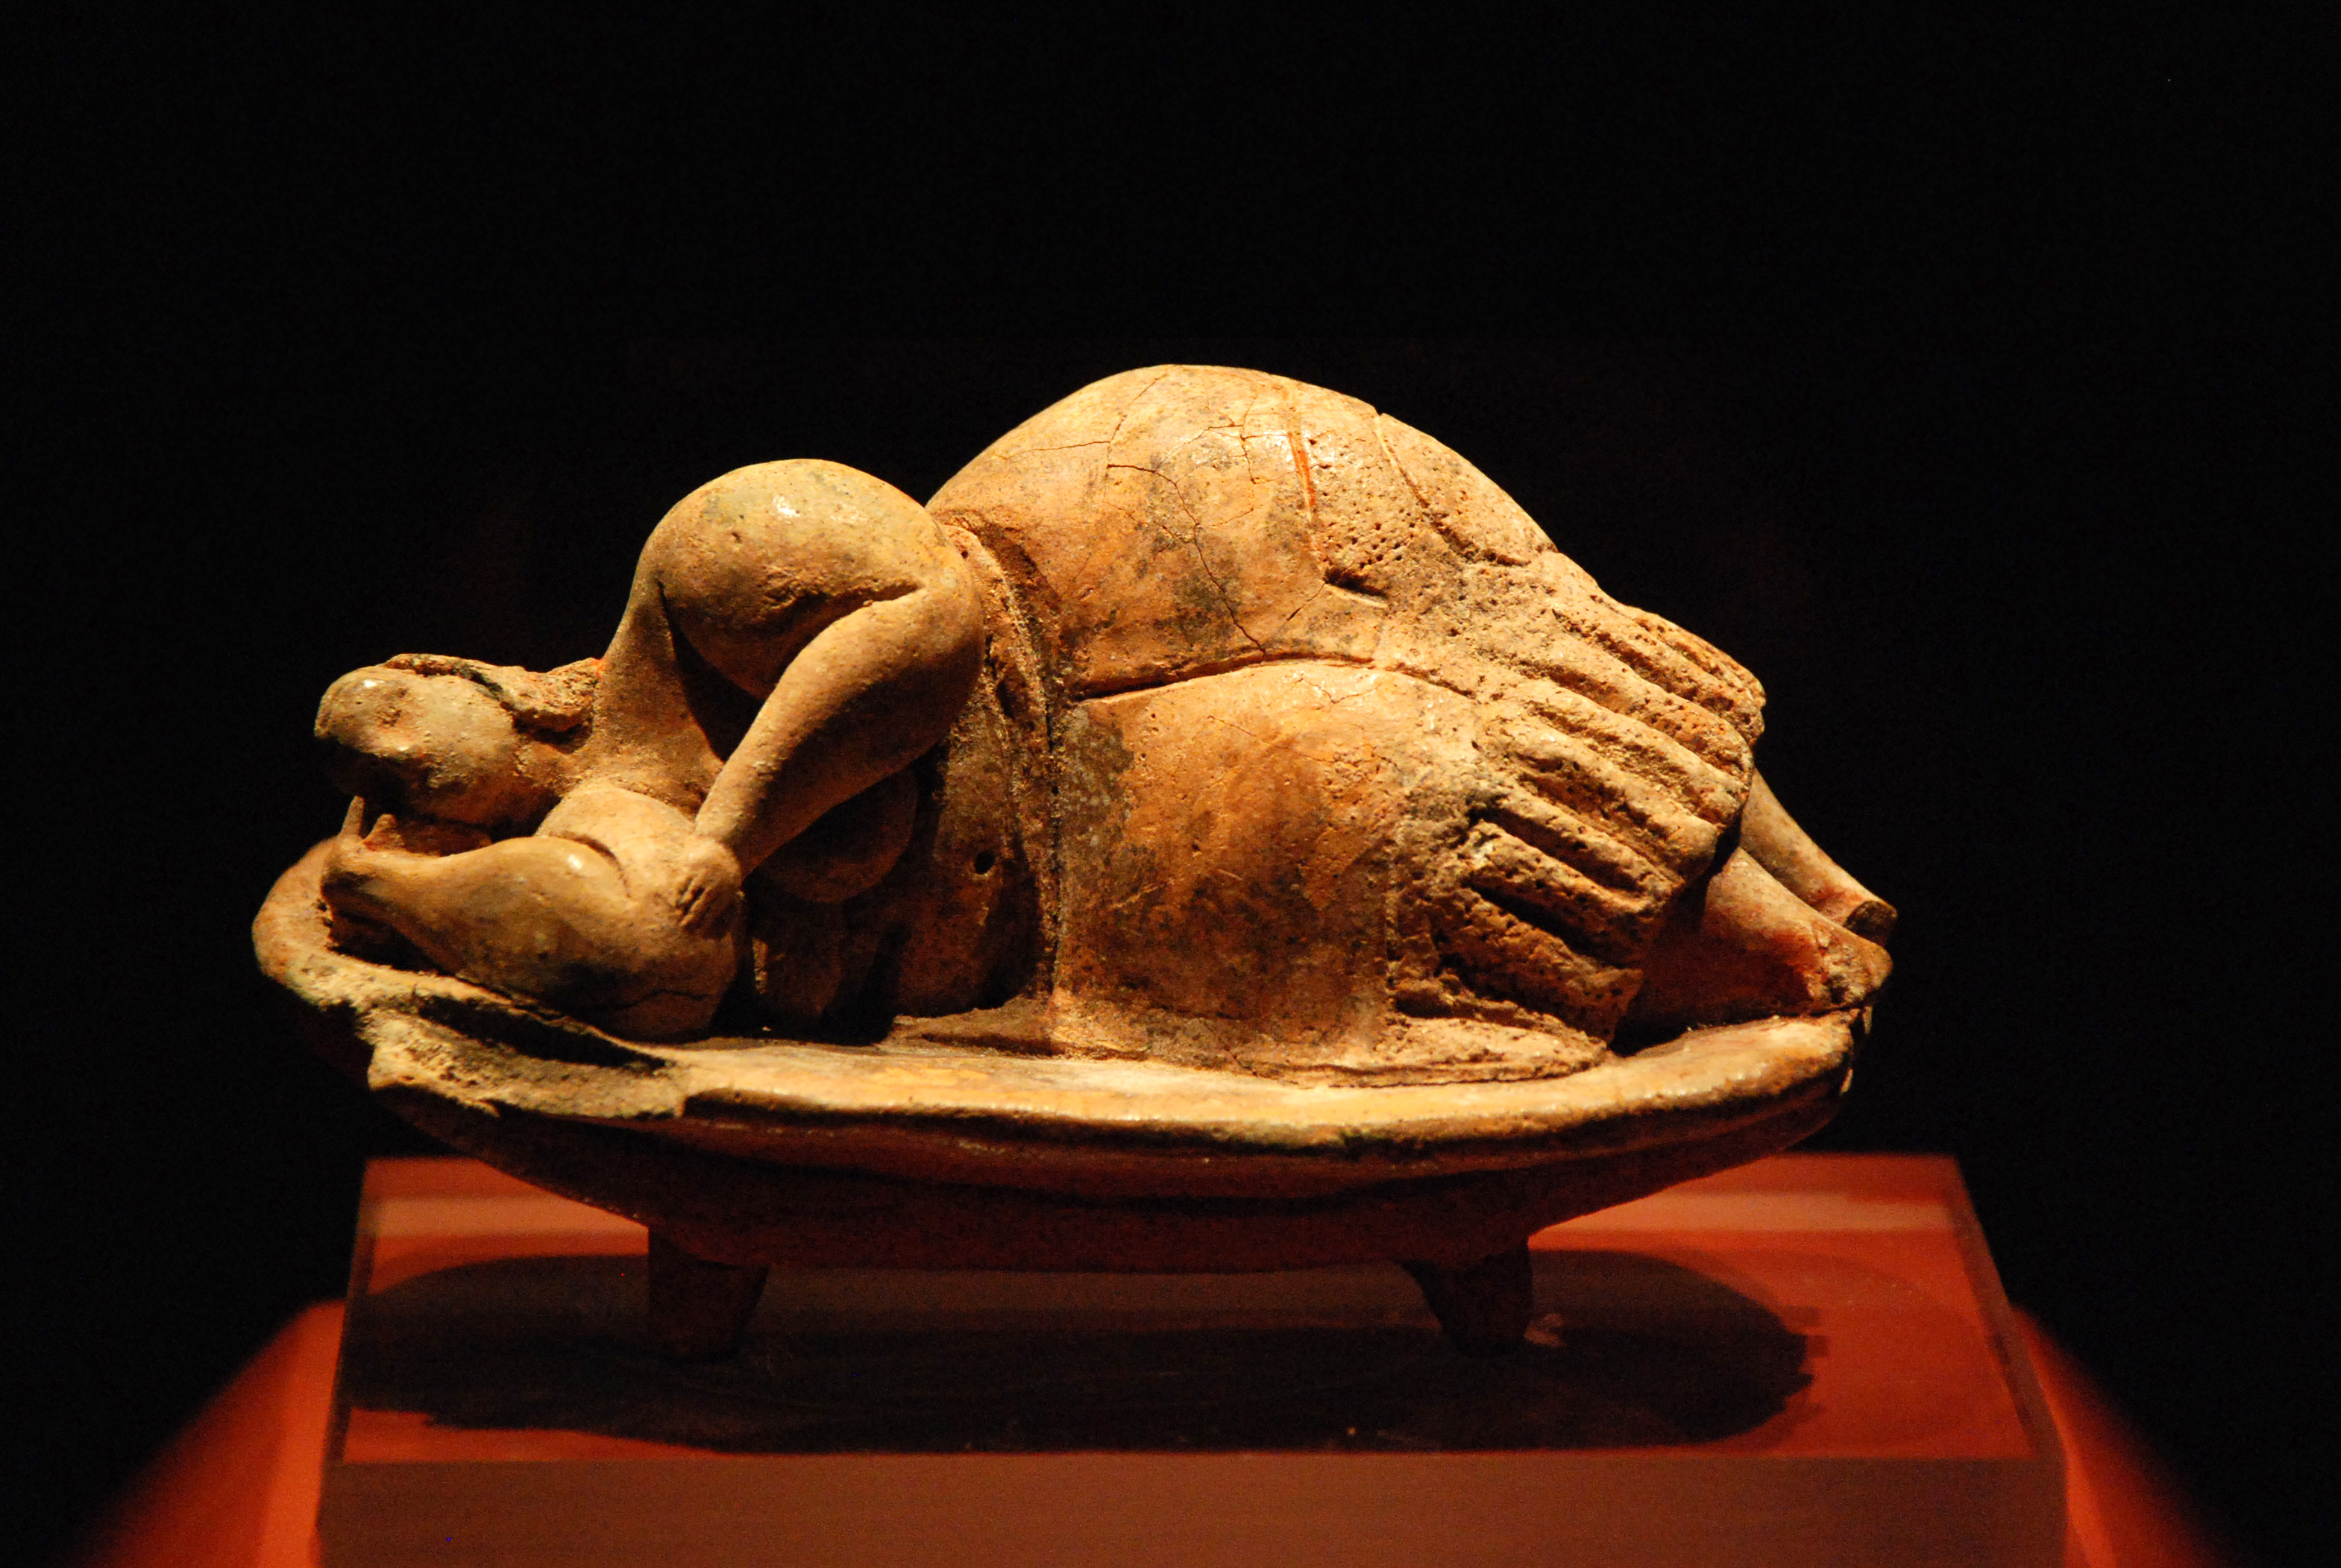 This clay figure of a reclining lady was found in one of the pits of the Hypogeum in Hal Saflieni in Malta. It has traces of red ochre paint and is thought to represent a